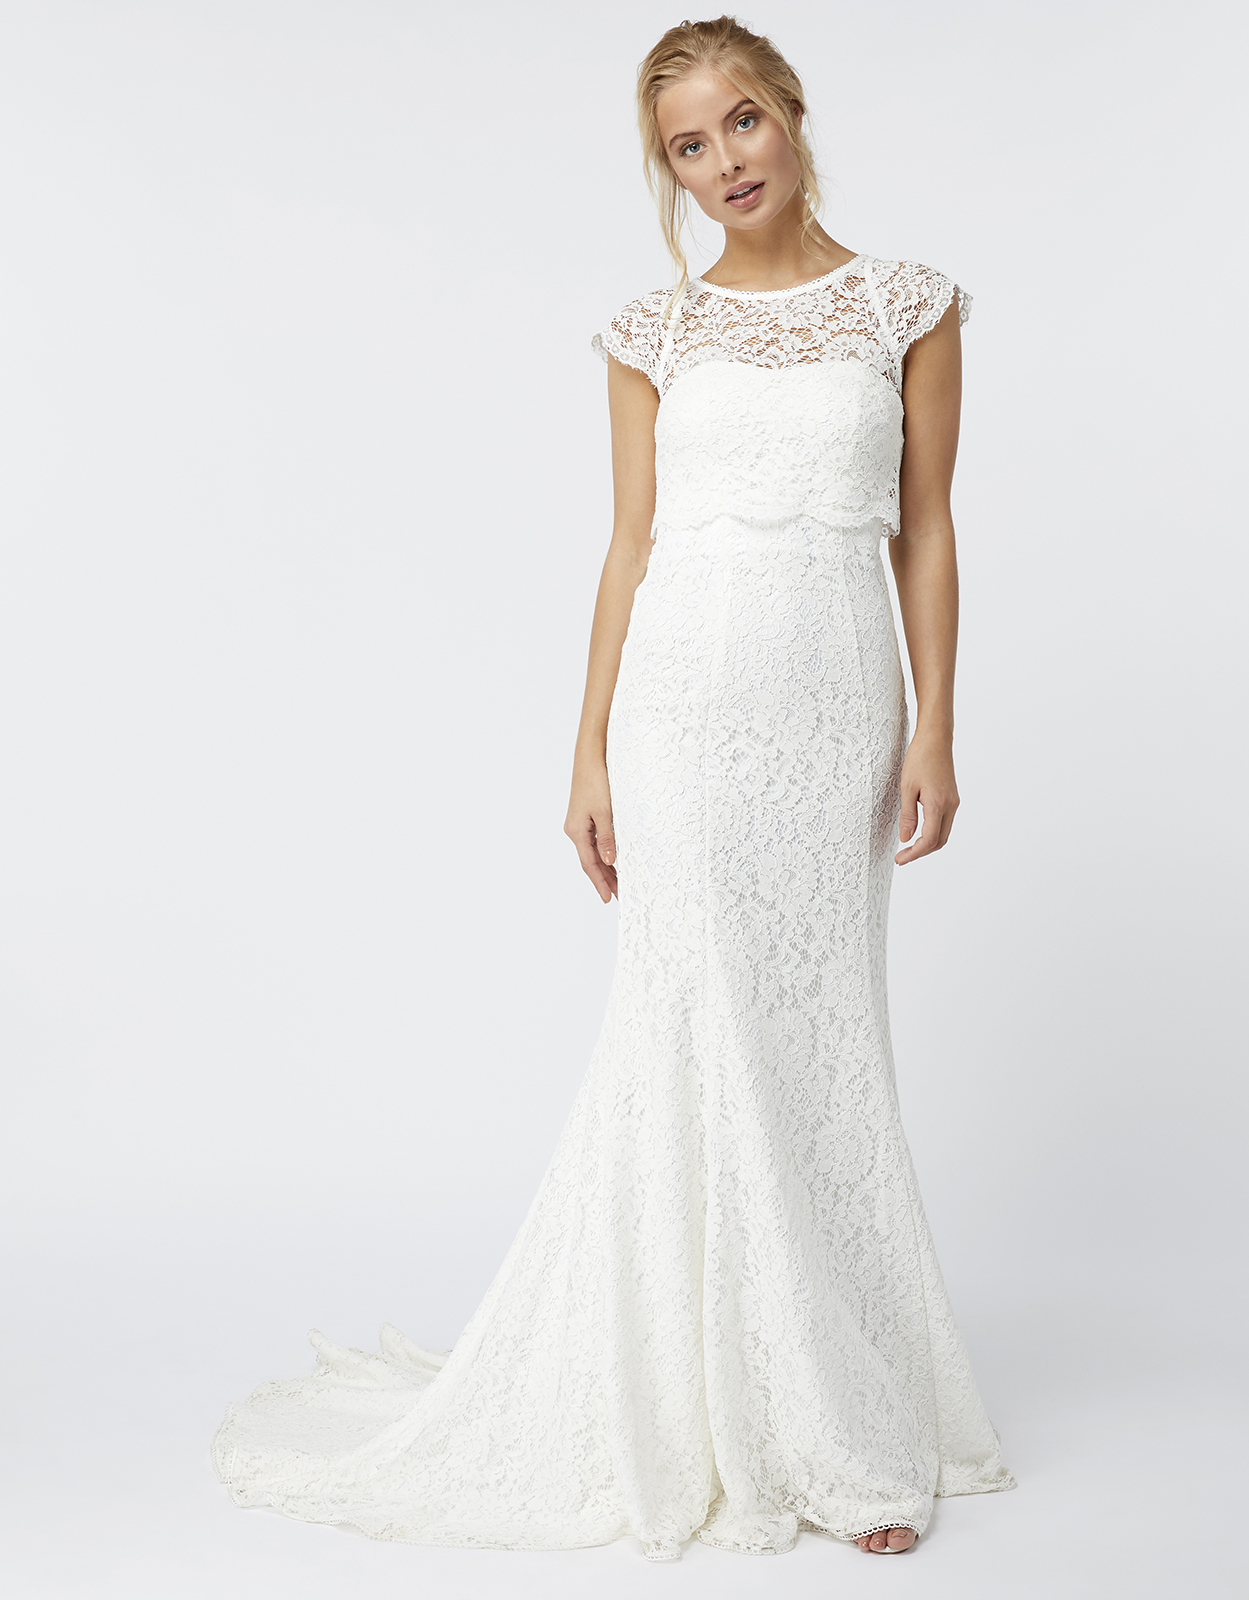 Monsoon Alondra Lace Bridal Dress